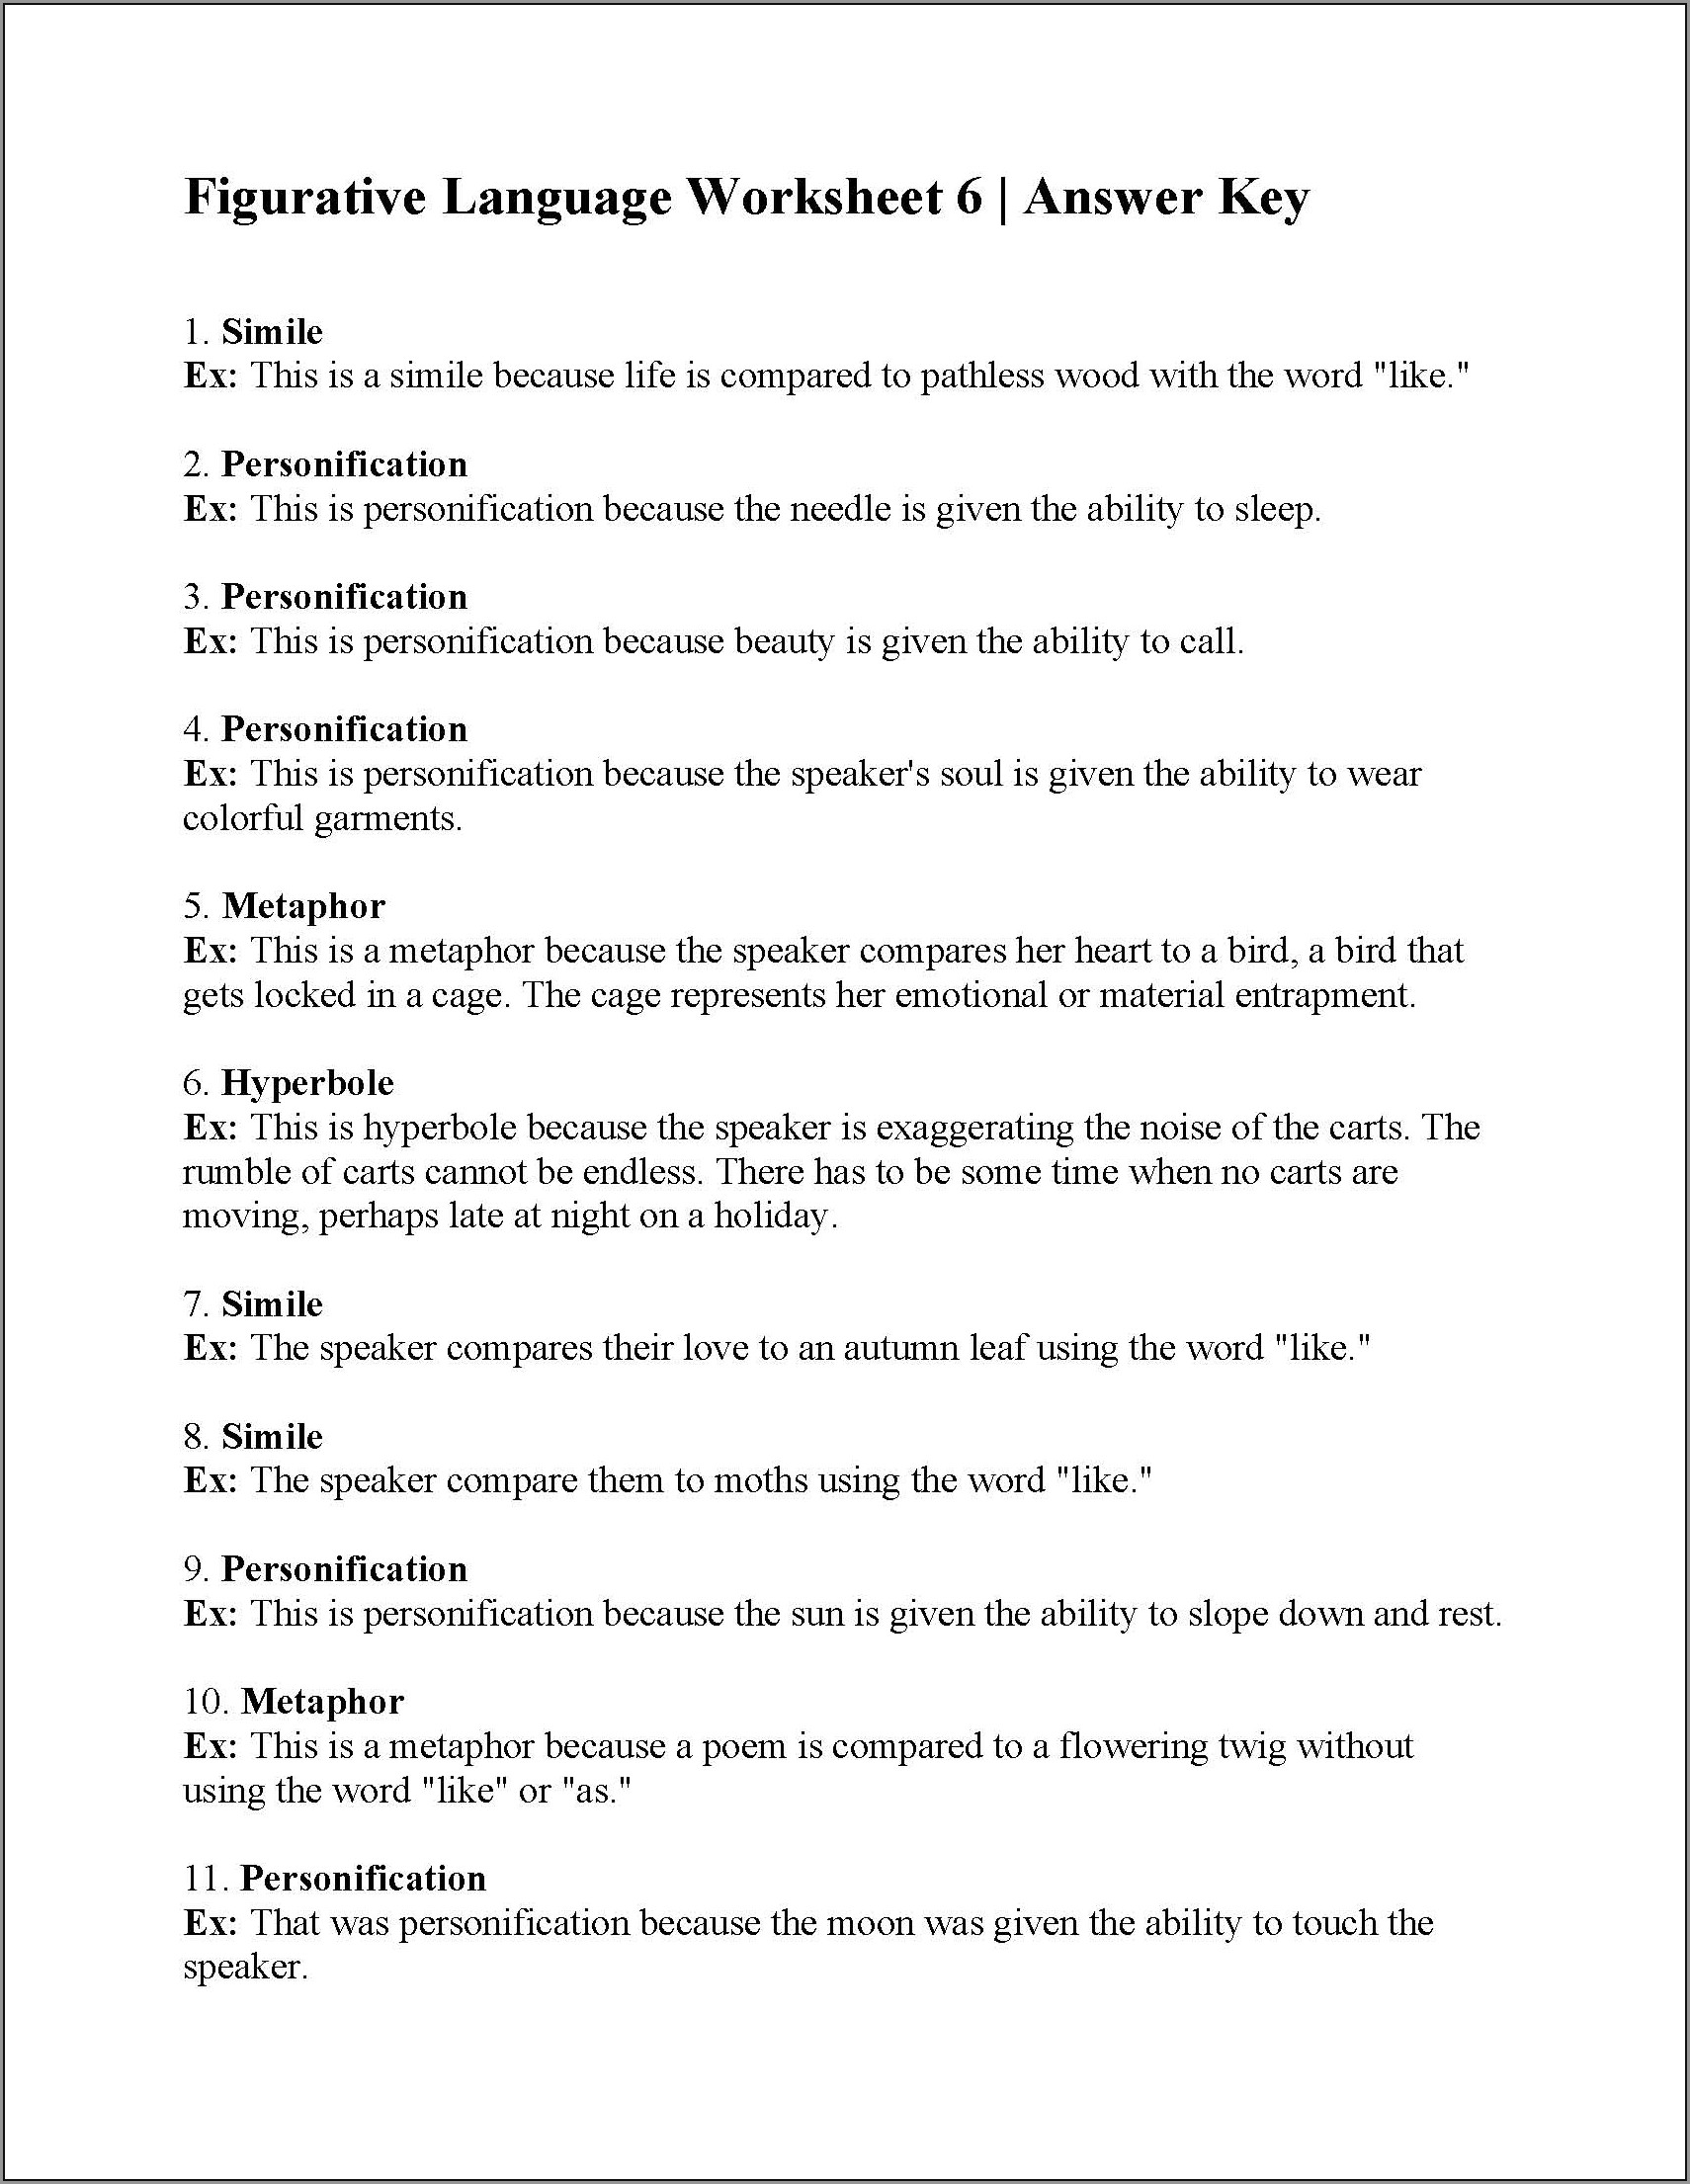 5th Grade Figurative Language Worksheets With Answers